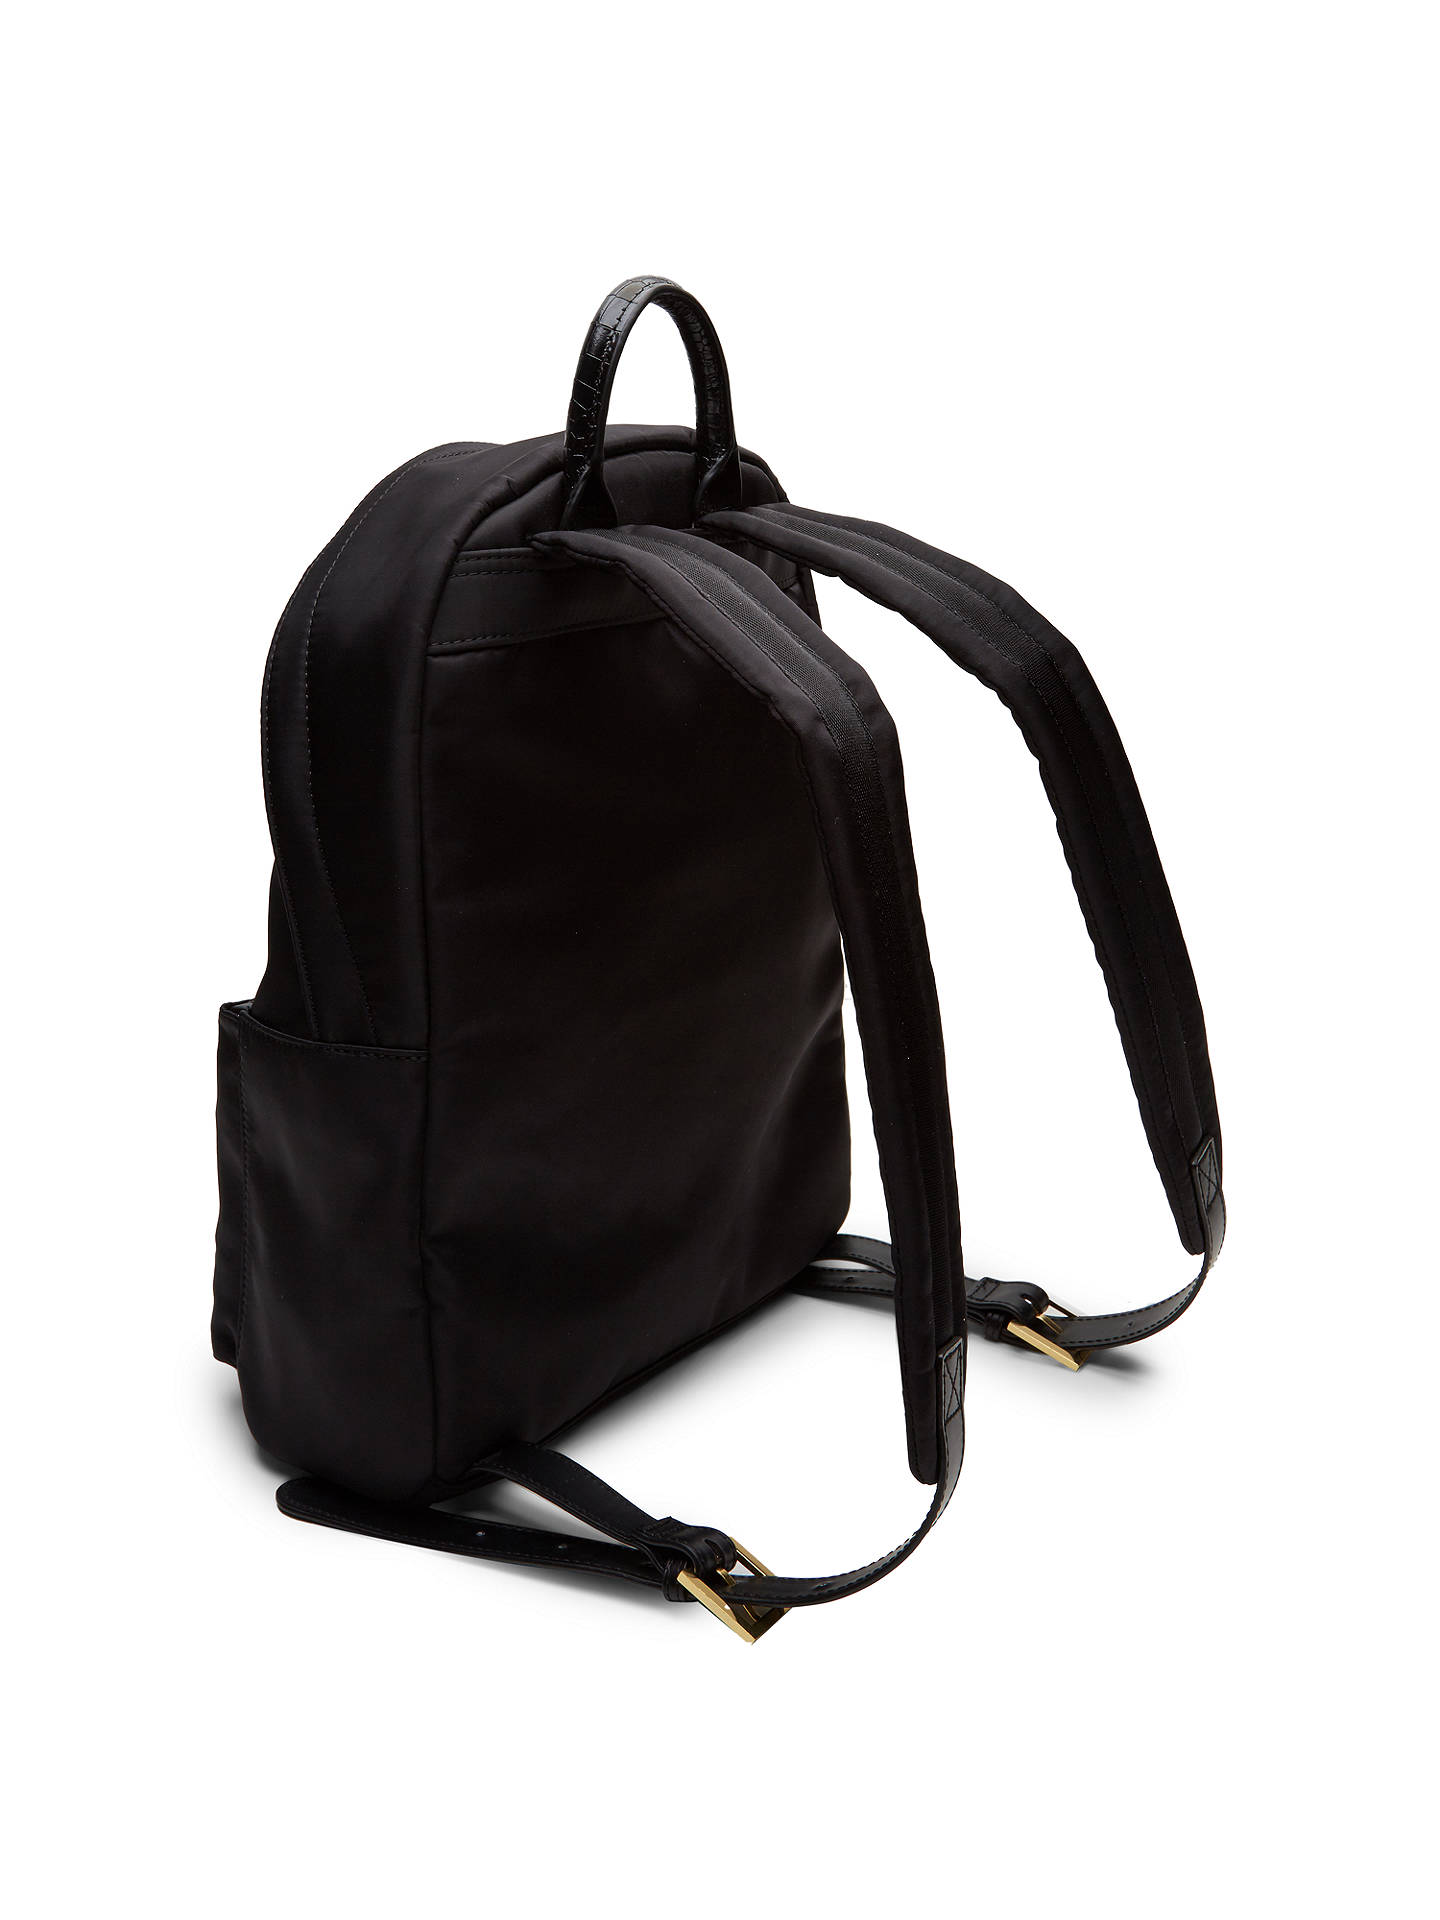 9370a6cce7a5 Ted Baker Kelda Small Backpack at John Lewis   Partners